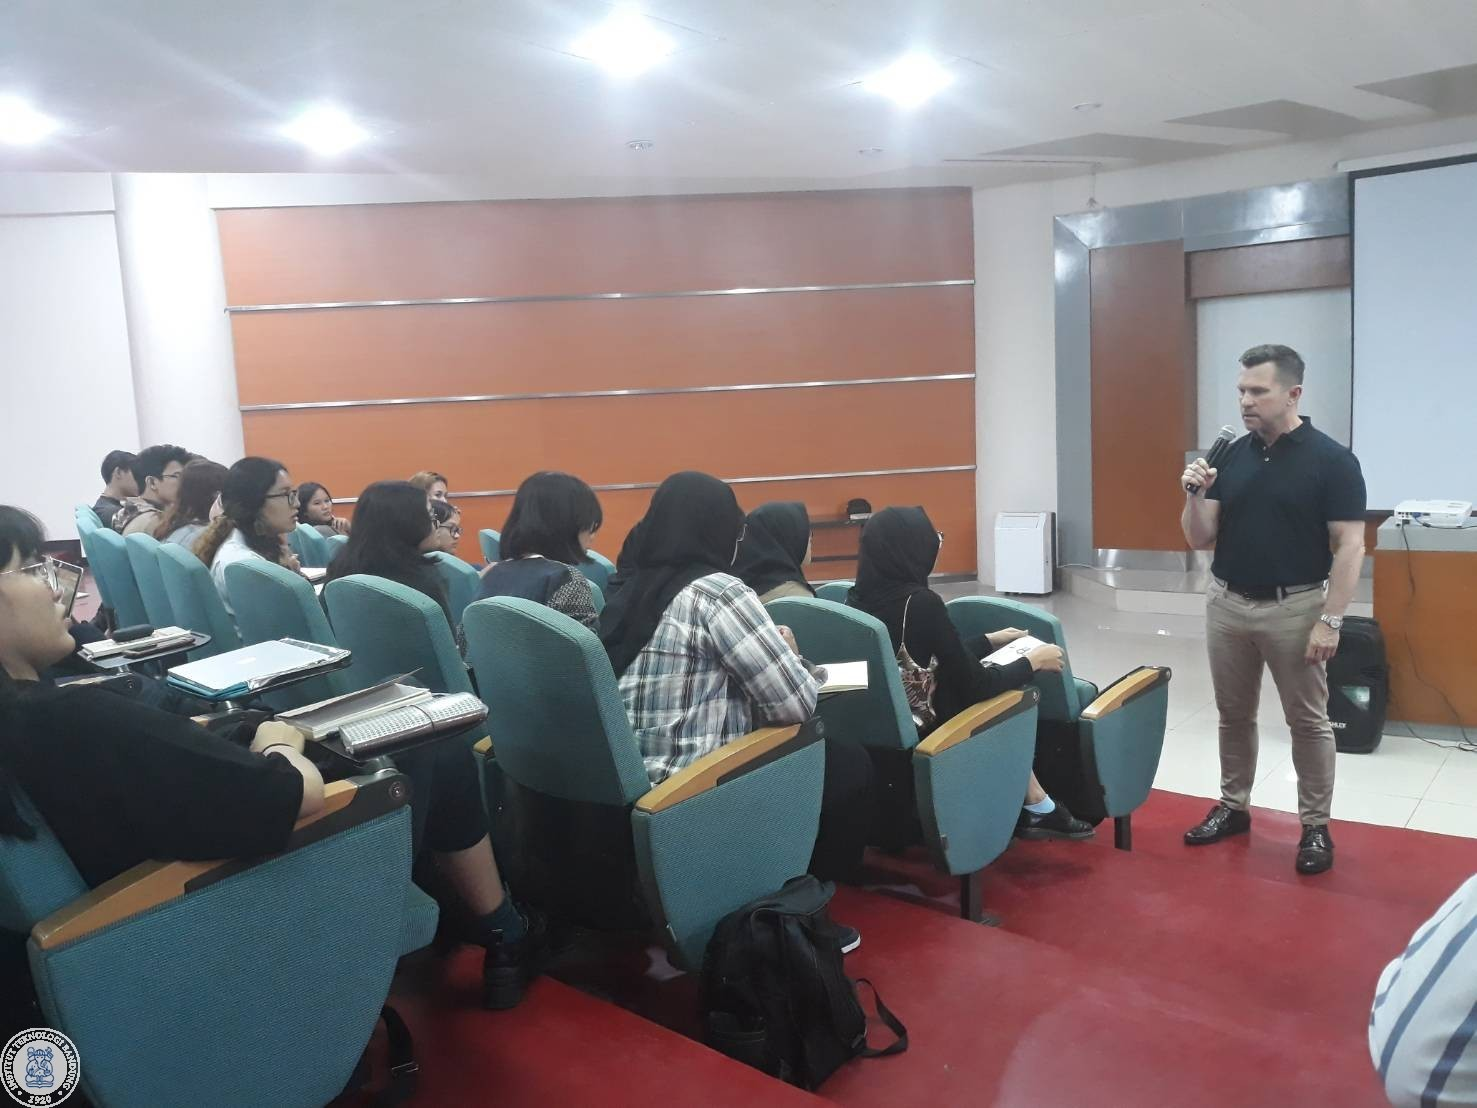 jeffry-thorpe-from-university-of-leeds-gave-a-public-lecture-at-fsrd-itb